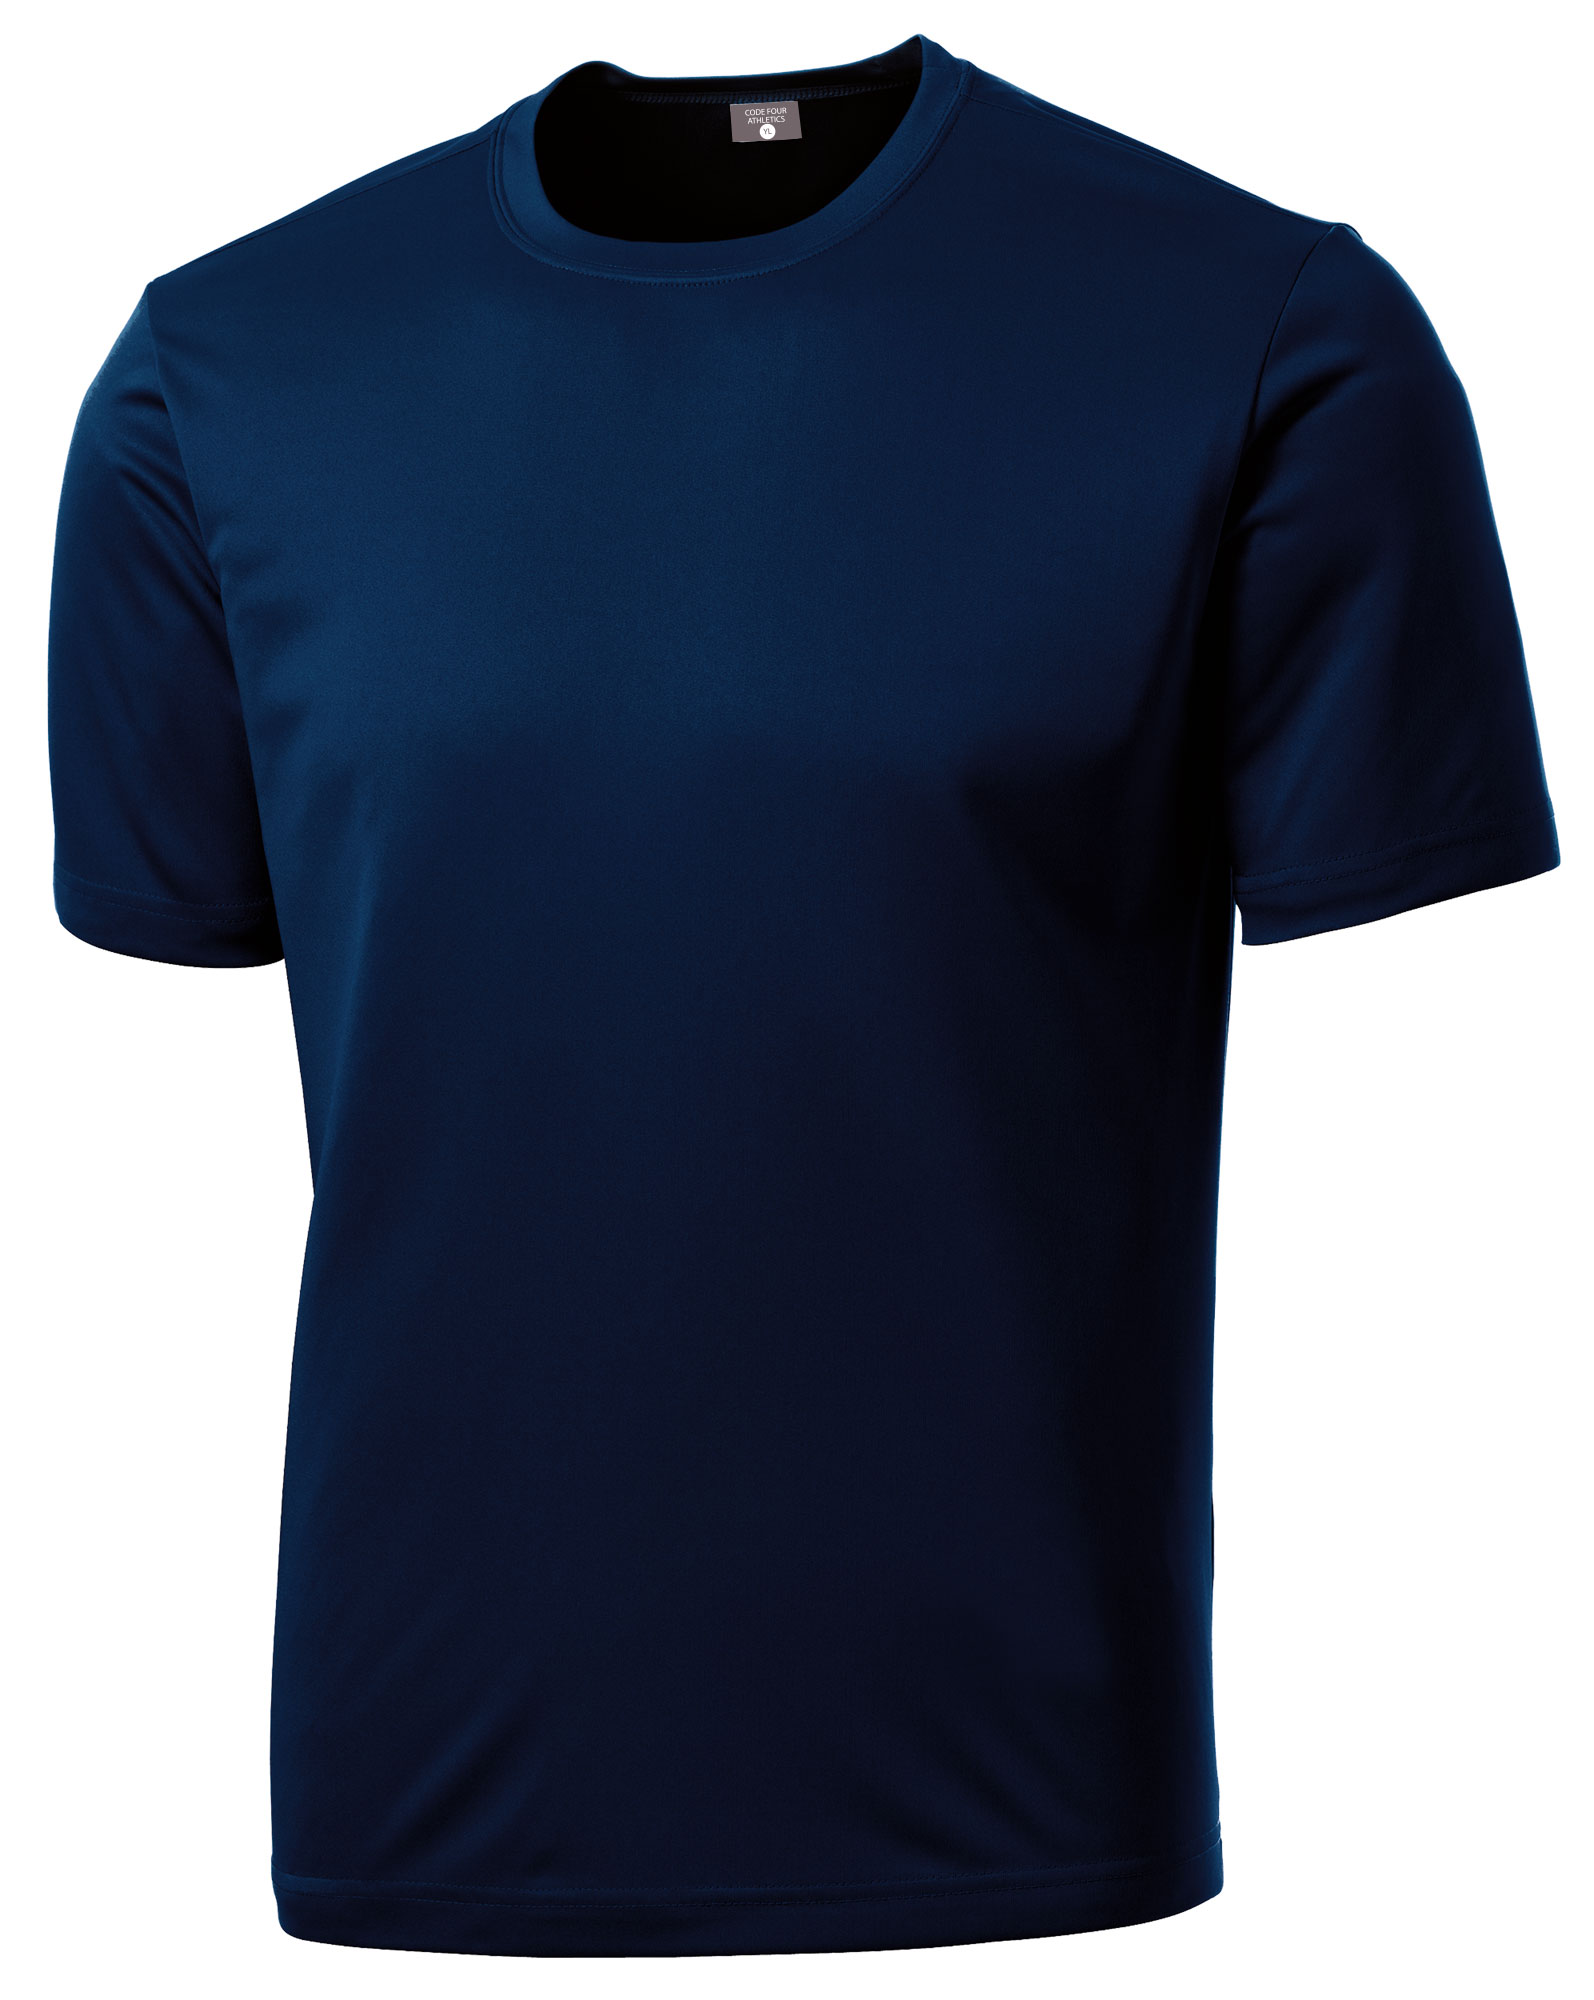 LIteTech soccer training top in navy by Code Four Athletics